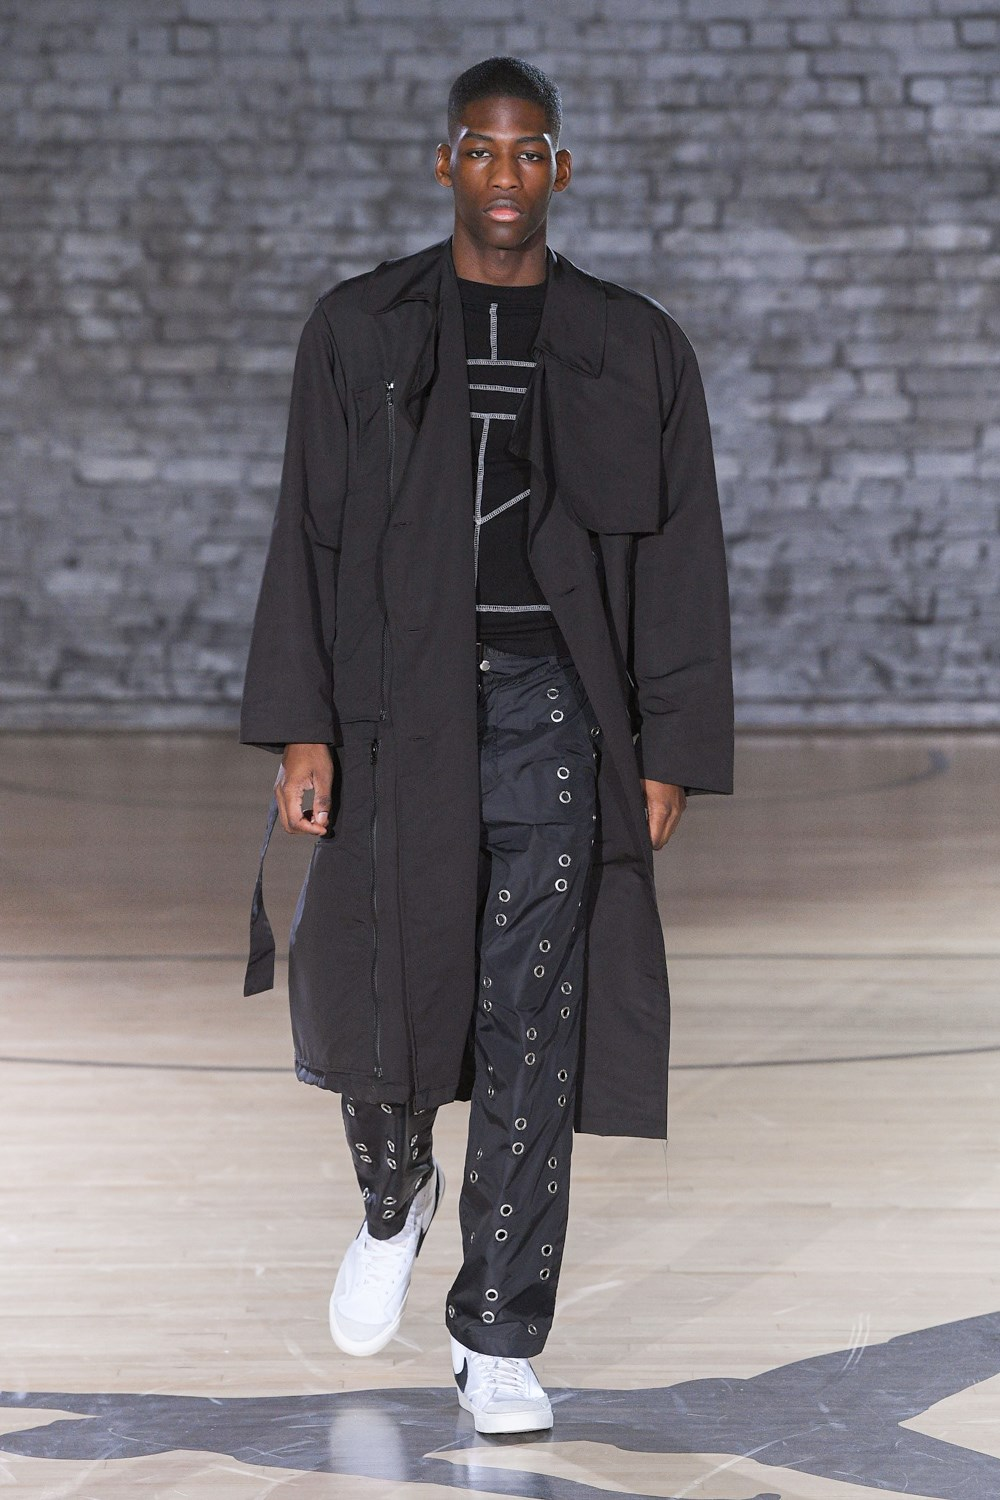 Studio ALCH - Automne-Hiver 2020-2021 - London Fashion Week Men's